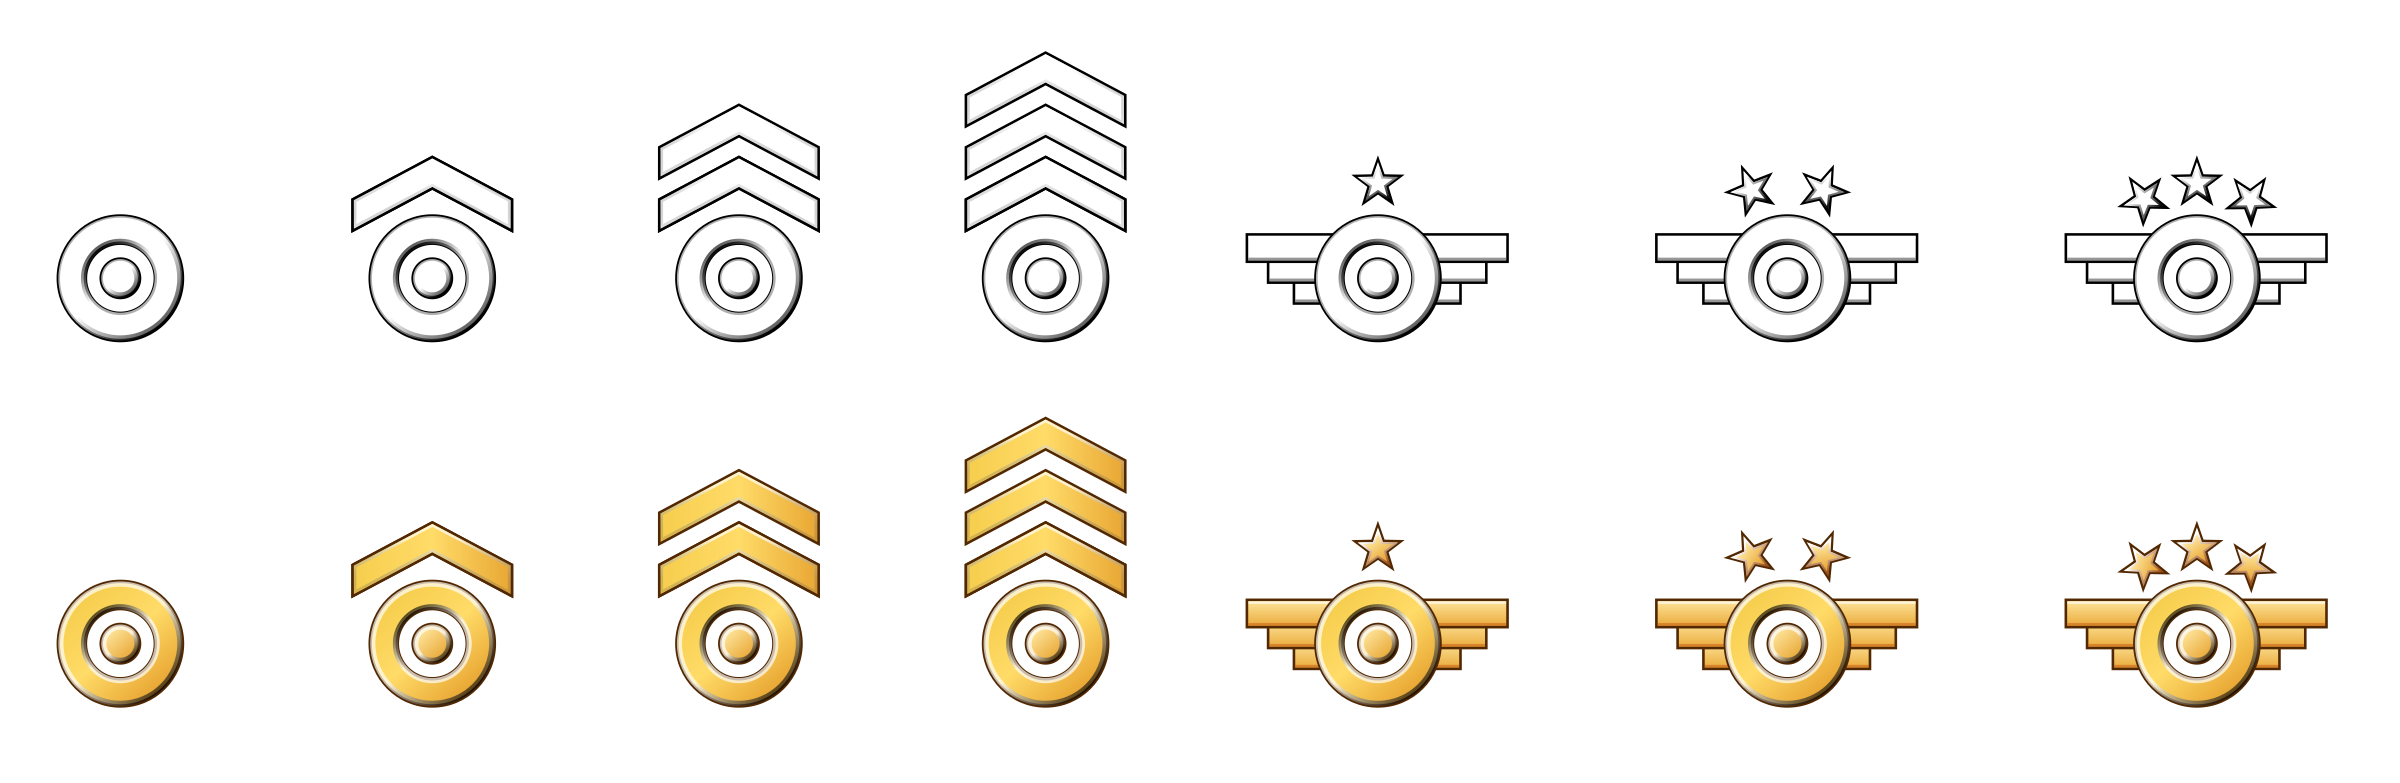 Clipart Military Badges